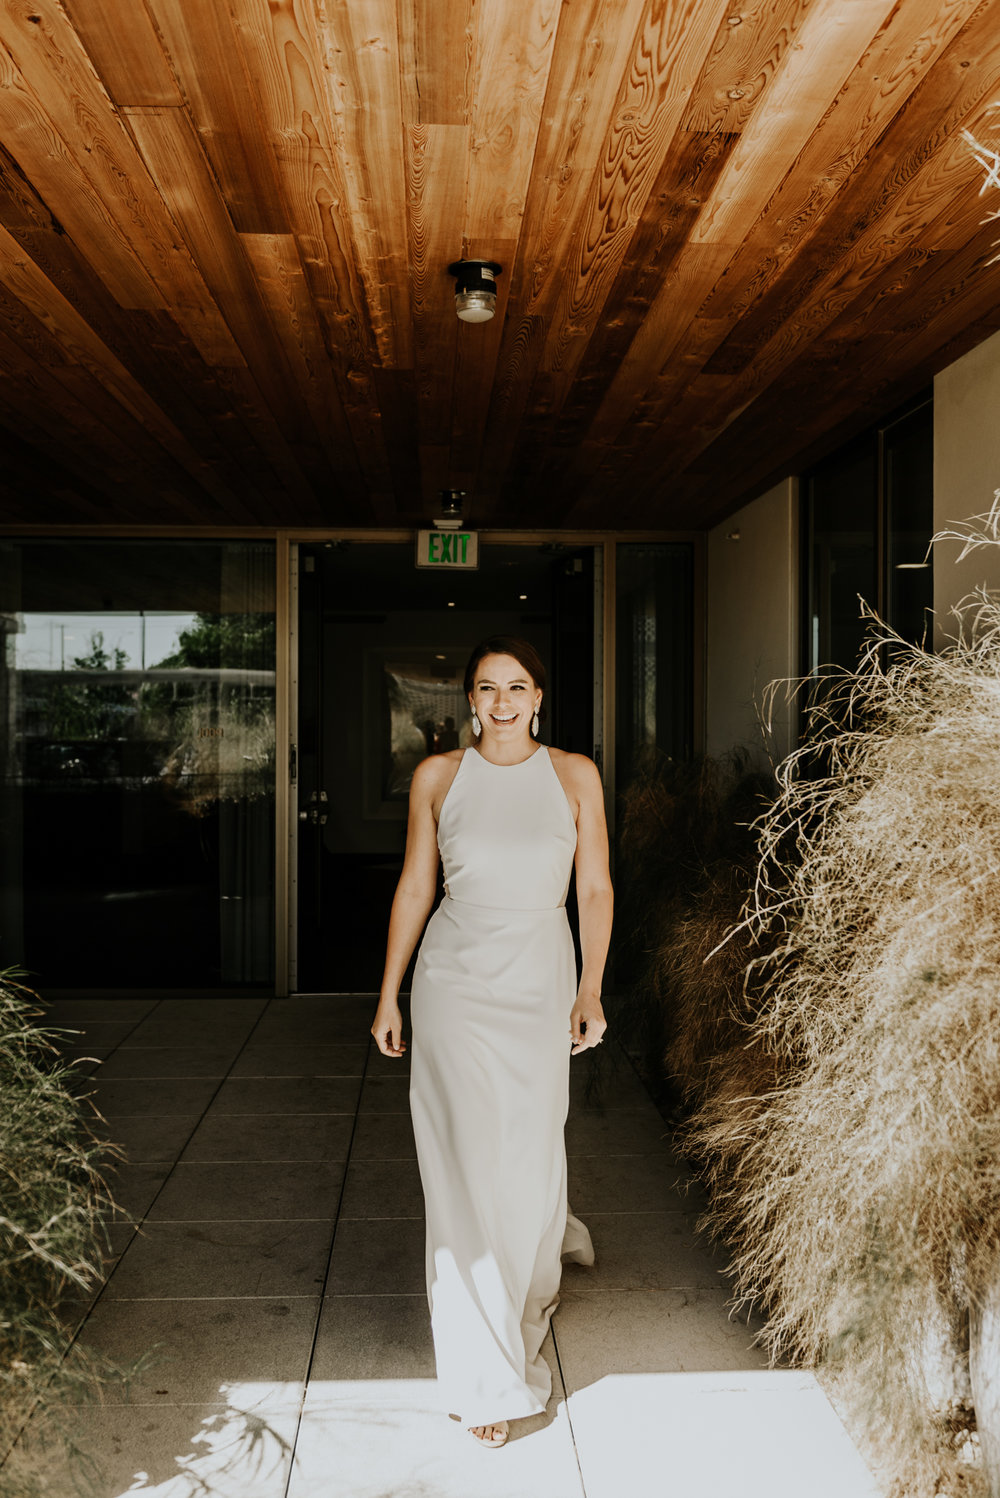 Intimate Wedding first look photos in Austin, Texas